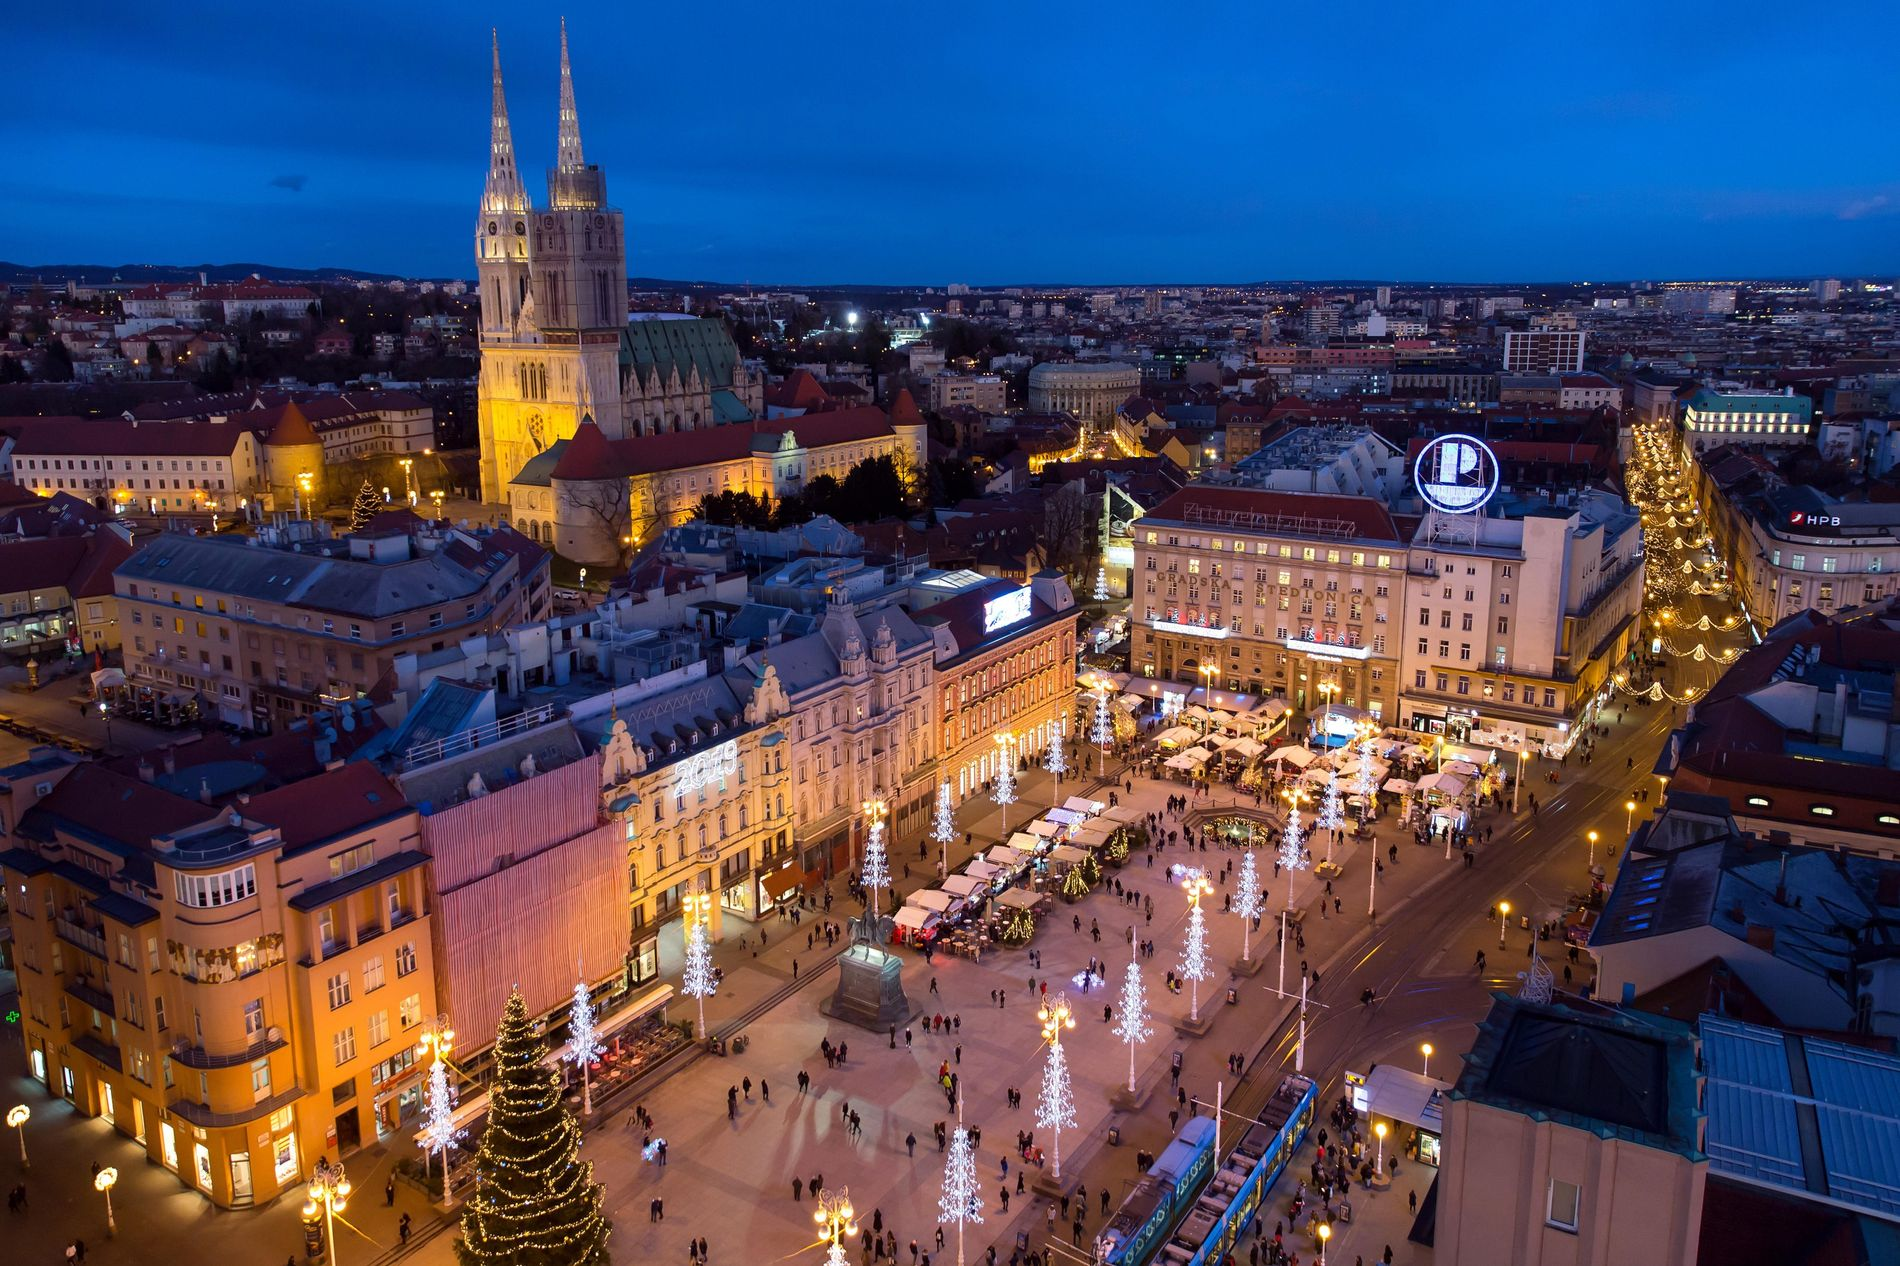 Zagreb's Christmas market in the central Ben Jelacic Square, pictured here, as well as European Square and Zrinjevac Park, has been named best Christmas market in Europe three years running.